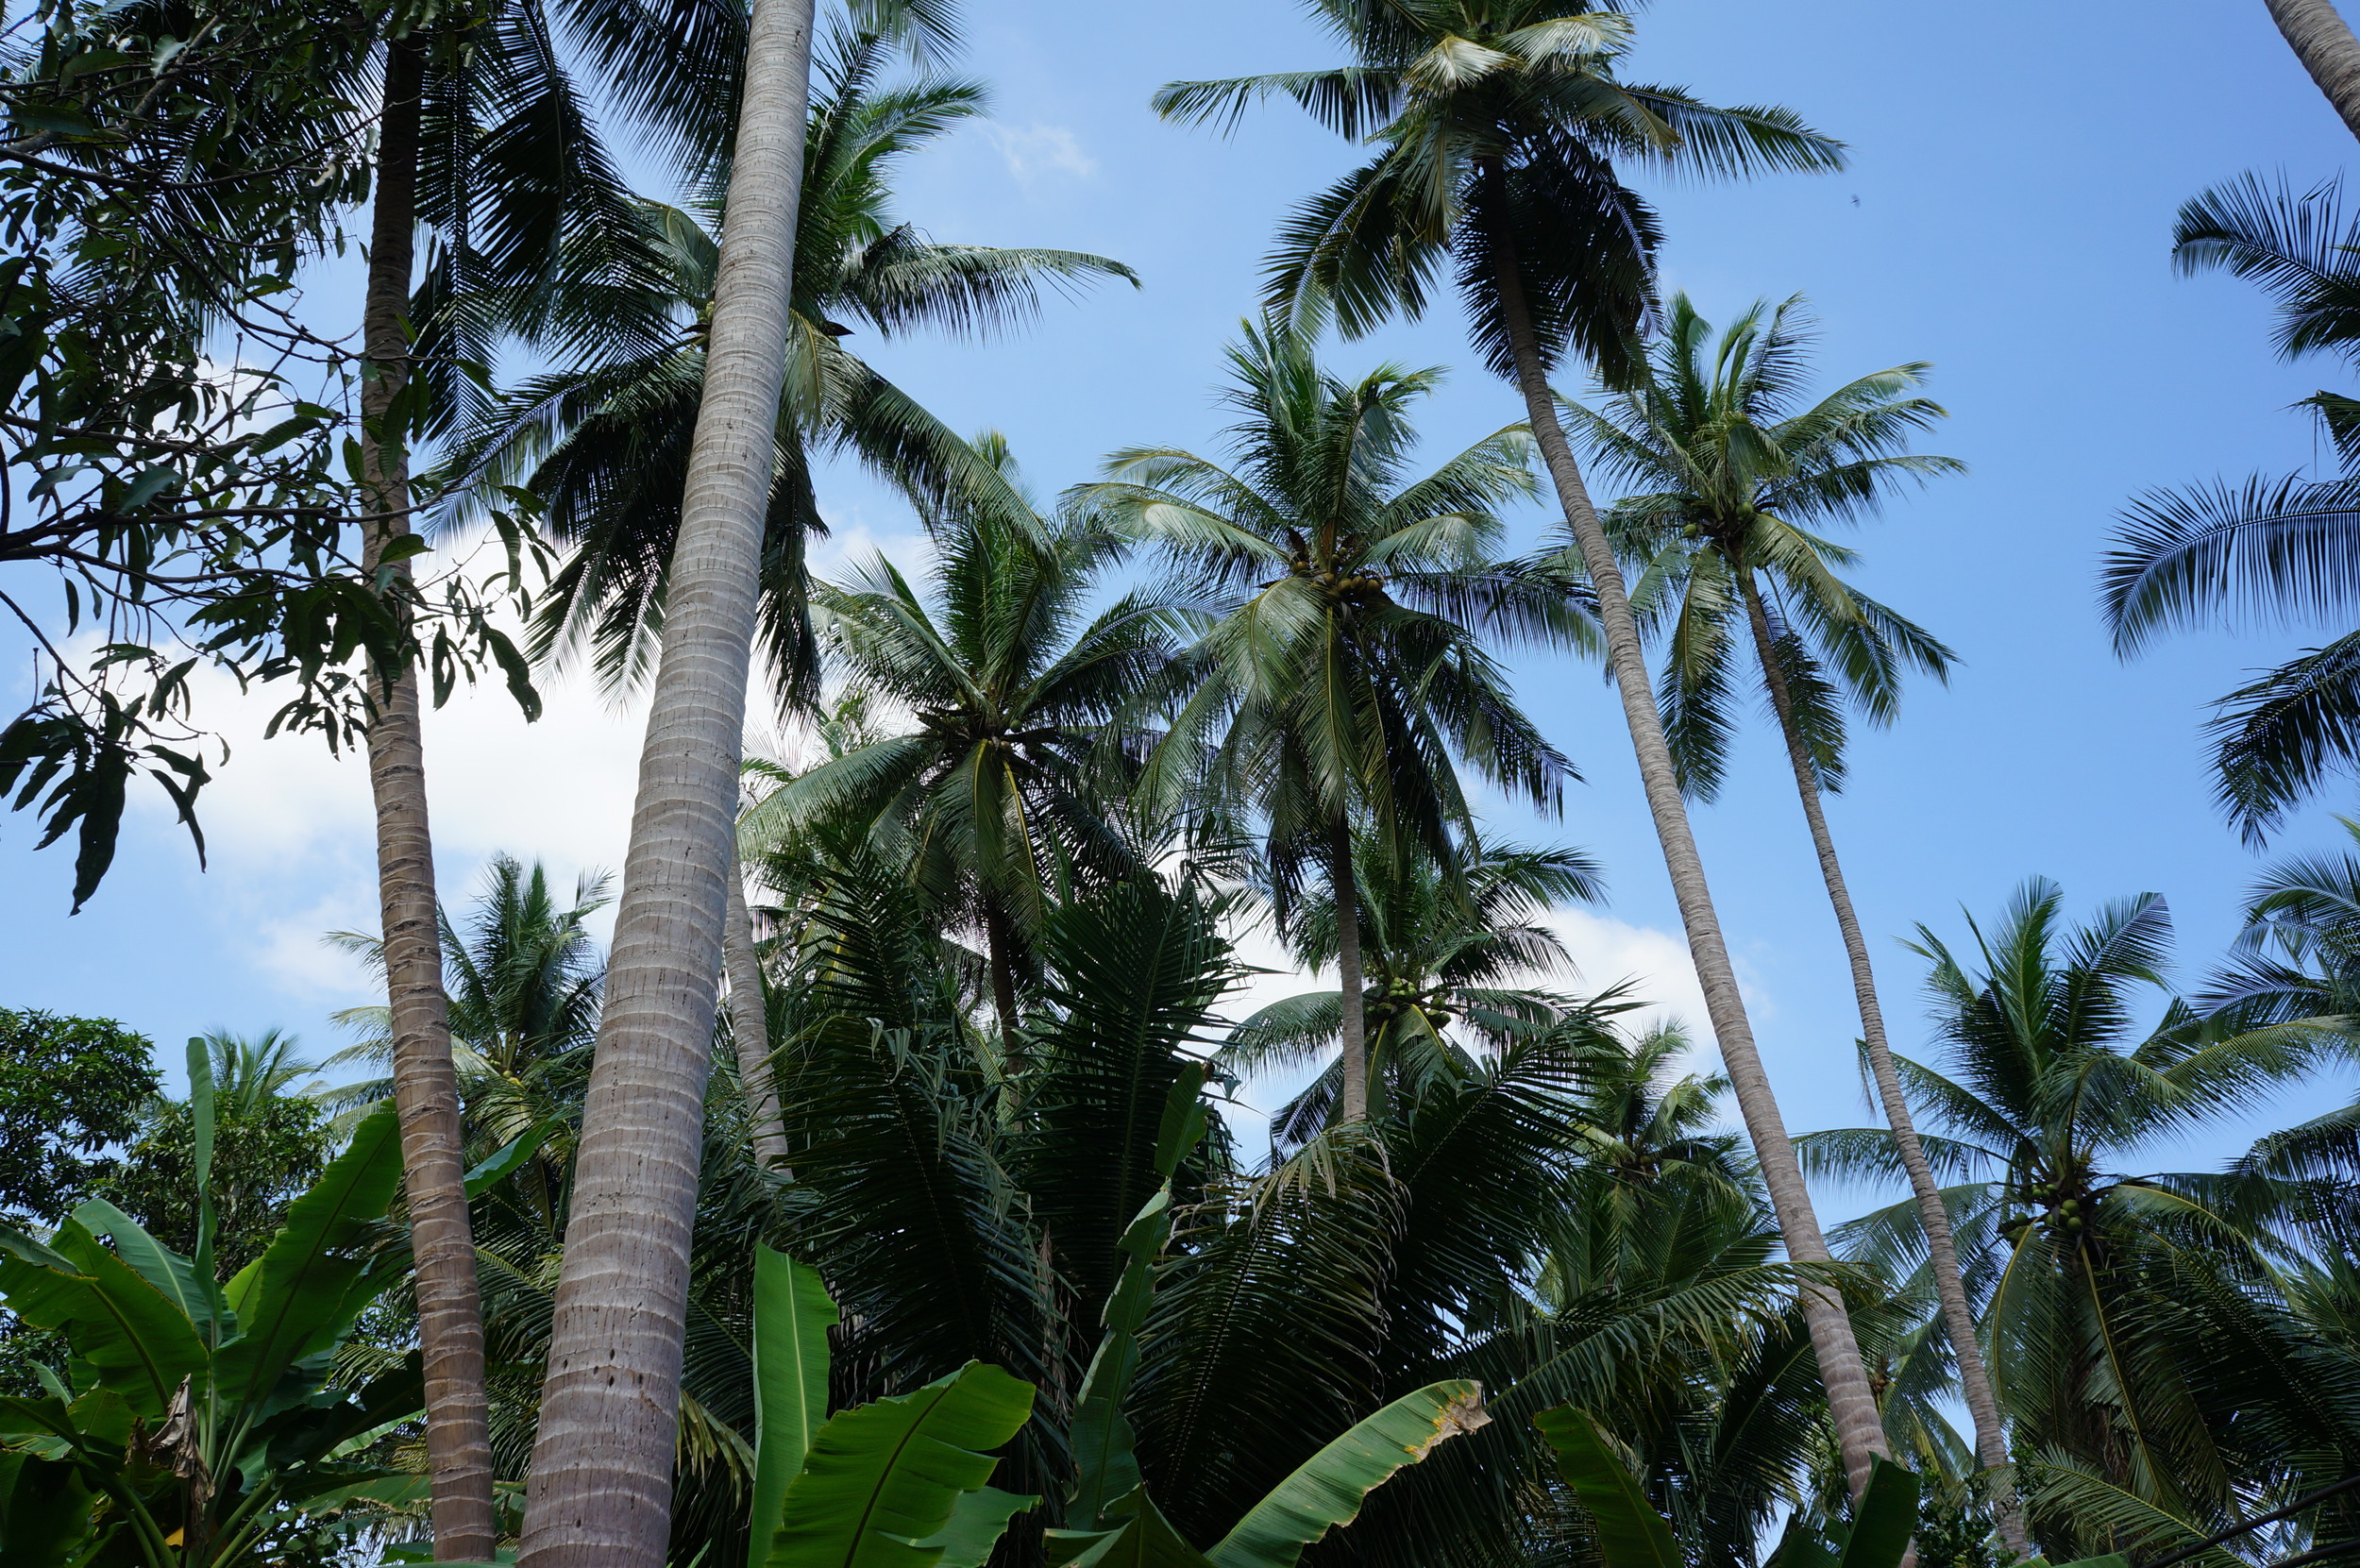 The Kokoso Baby coconut farm is an ethical, family-run, certified organic farm in Thailand.